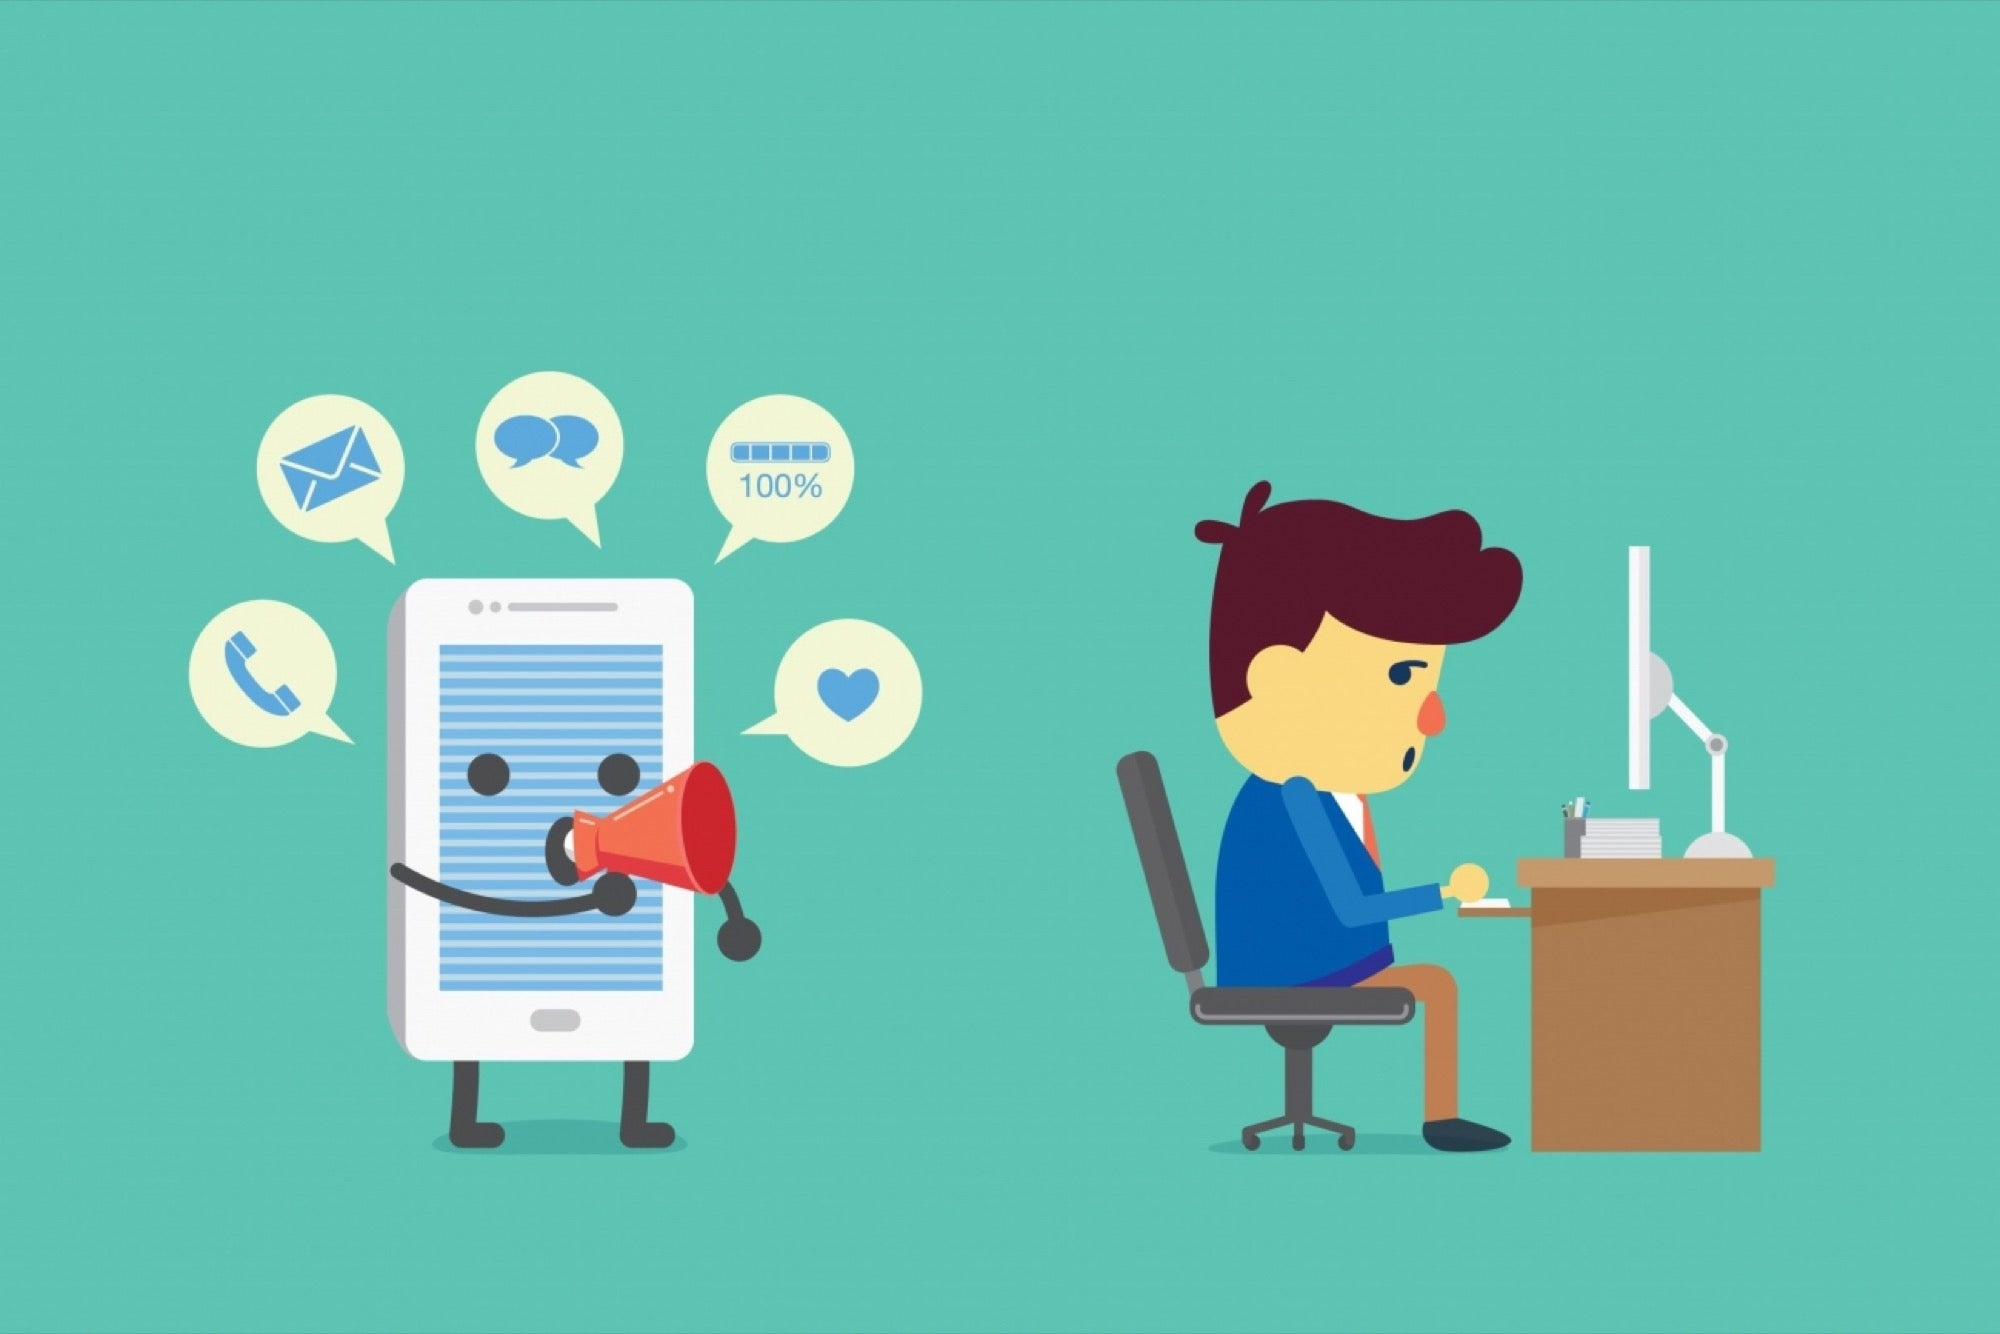 Infographic: How To Focus At Work In The Age Of Distractions